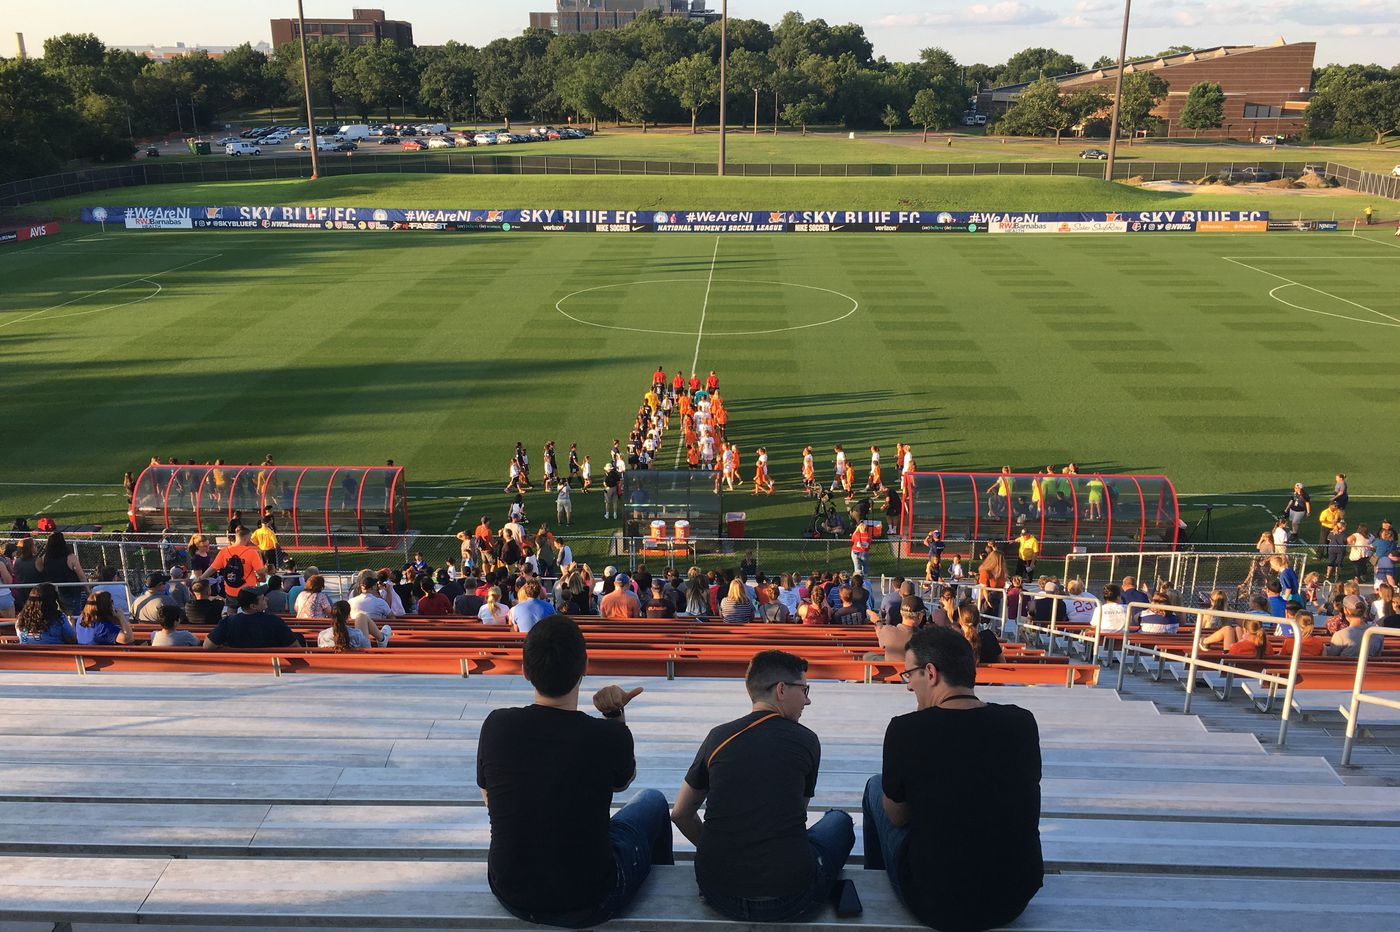 Sky Blue FC aims to leave Rutgers' Yurcak Field after 2019 NWSL season, but next home isn't set yet